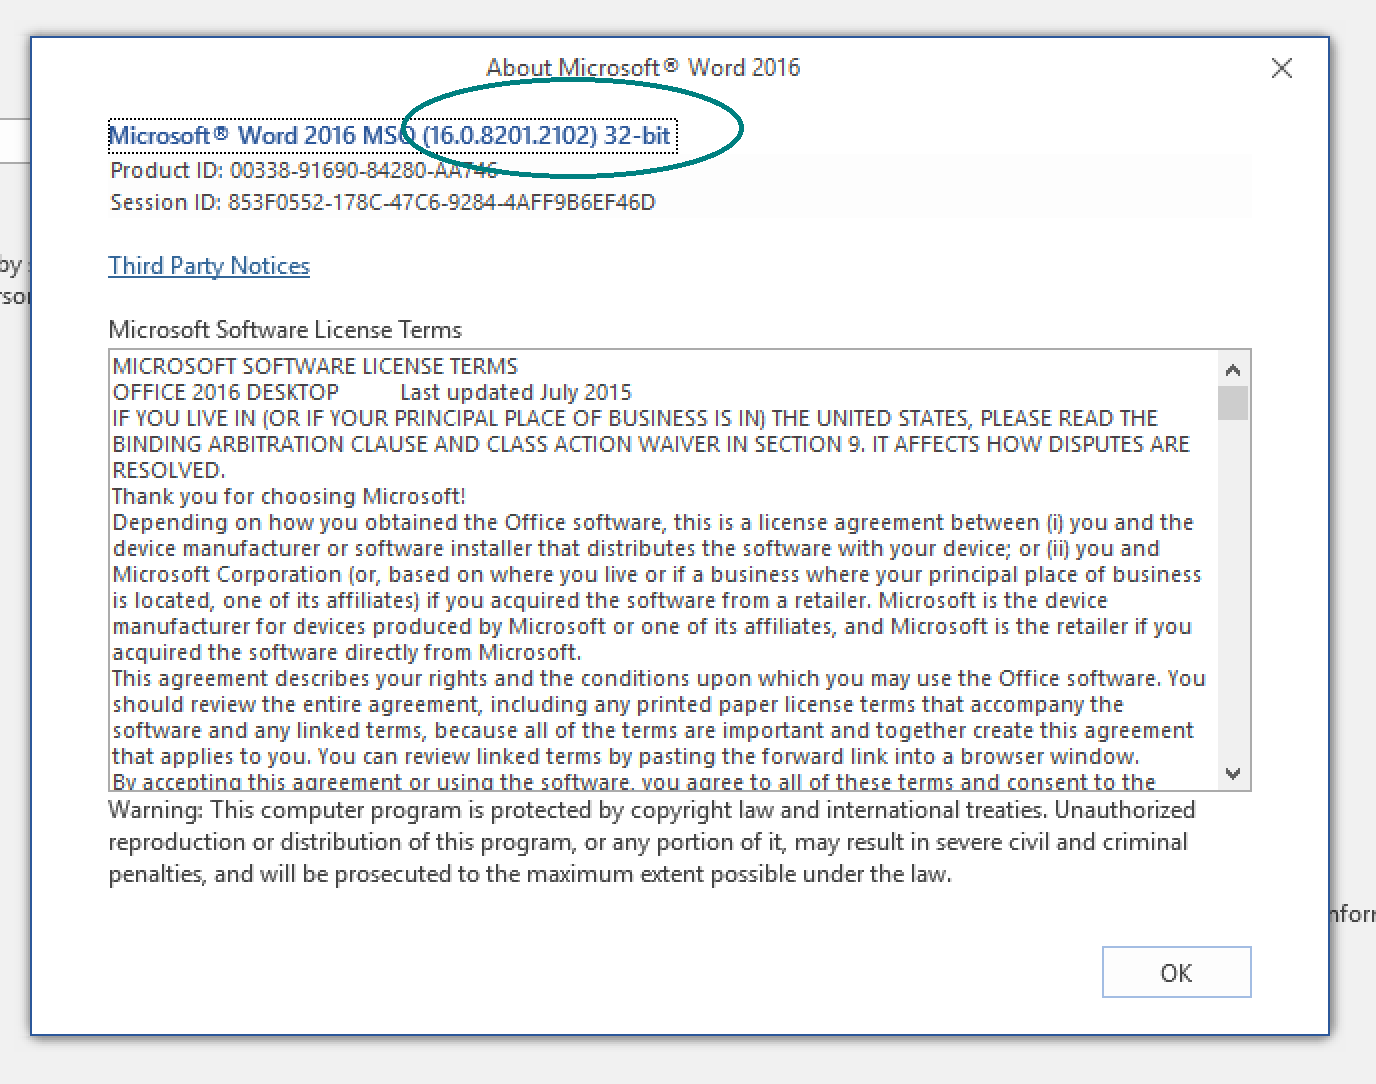 How do I check whether I have 64-bit or 32-bit Office on my